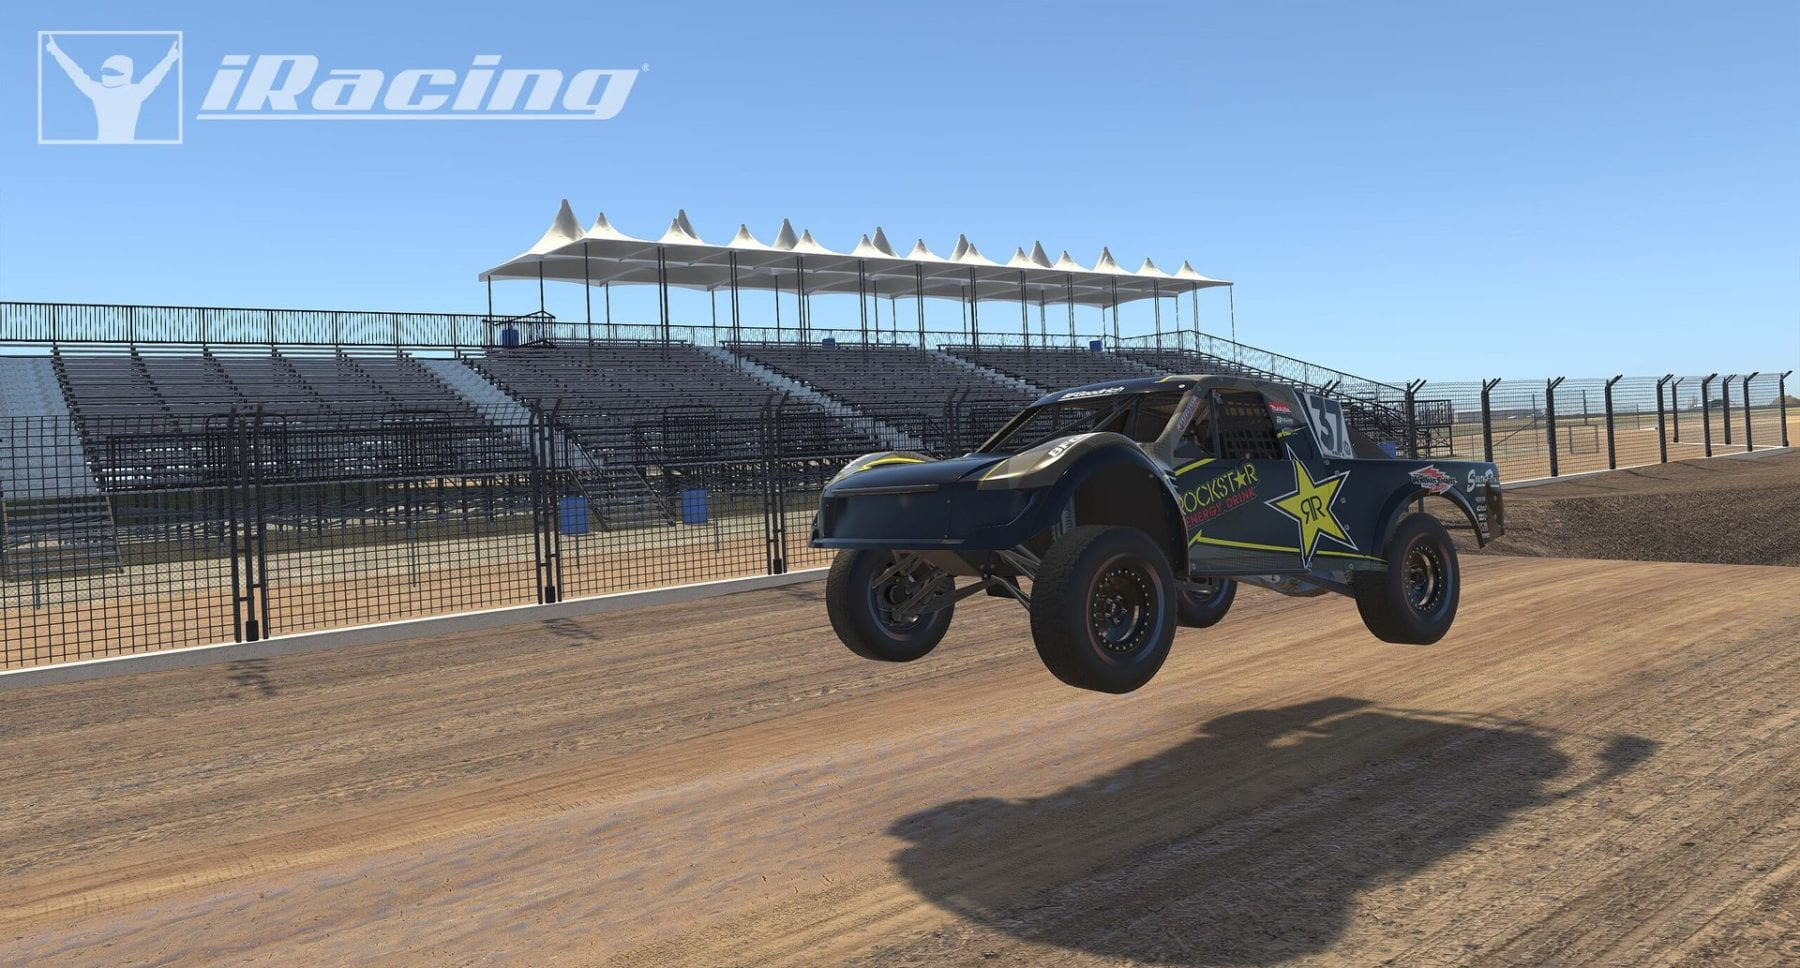 The Lucas Oil Off-Road Racing Series is Coming to iRacing